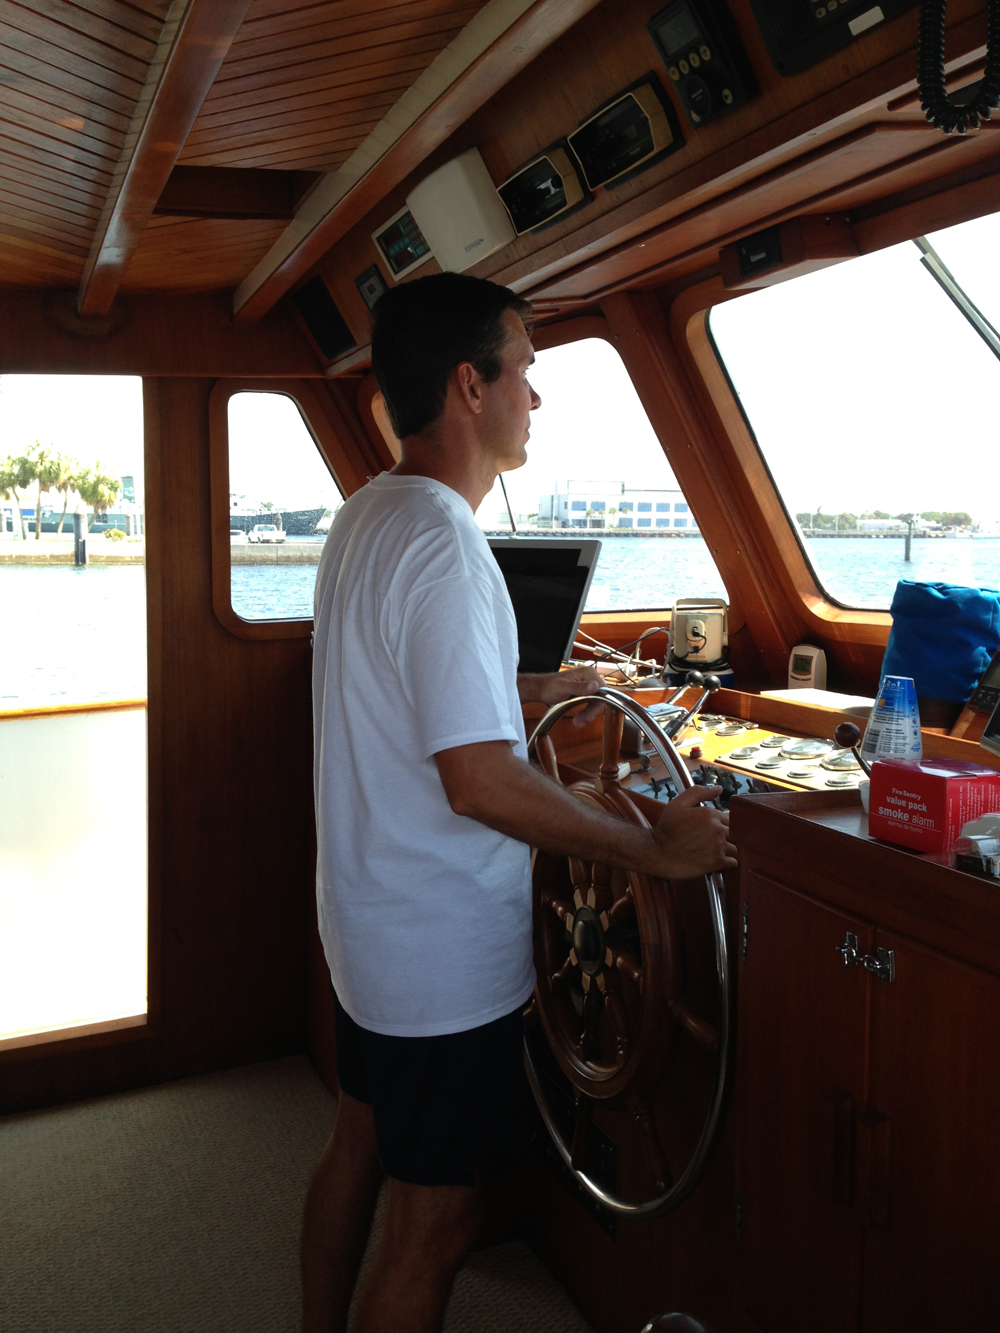 Captain Conrad at the helm. The teak herring-bone ceiling is beautiful.